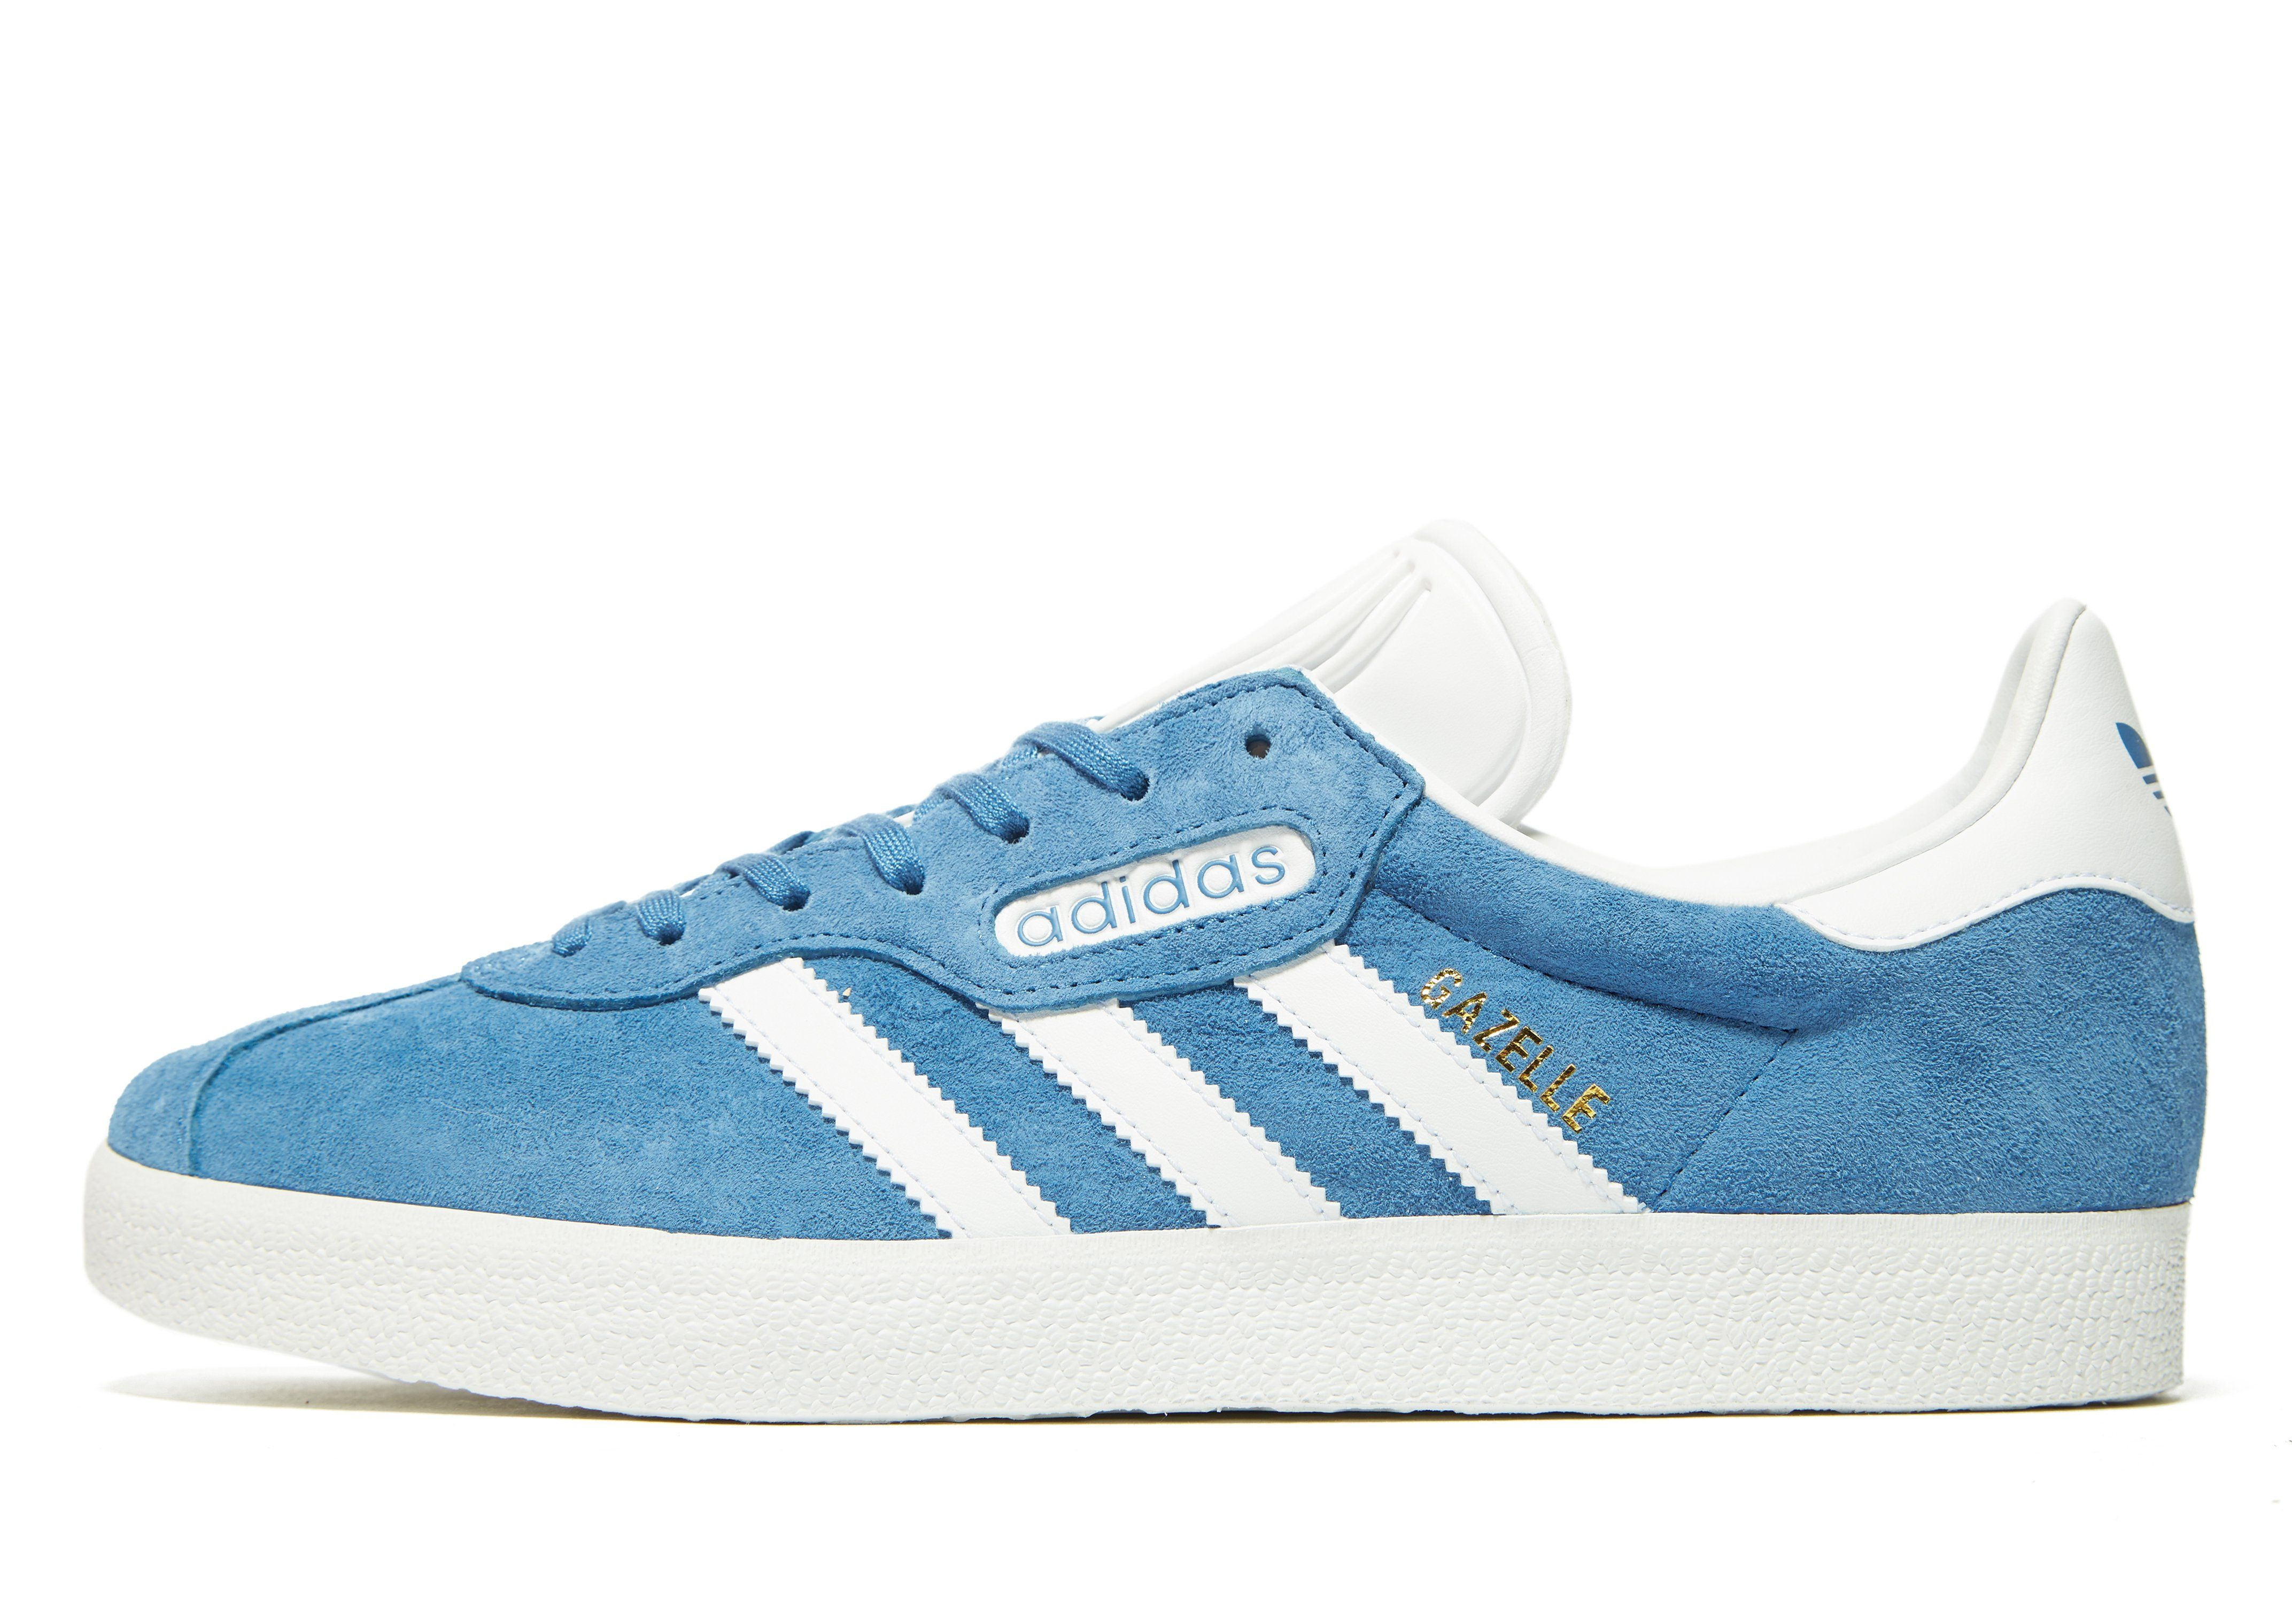 Baskets adidas Originals Gazelle Super Essential 3KSehyX6